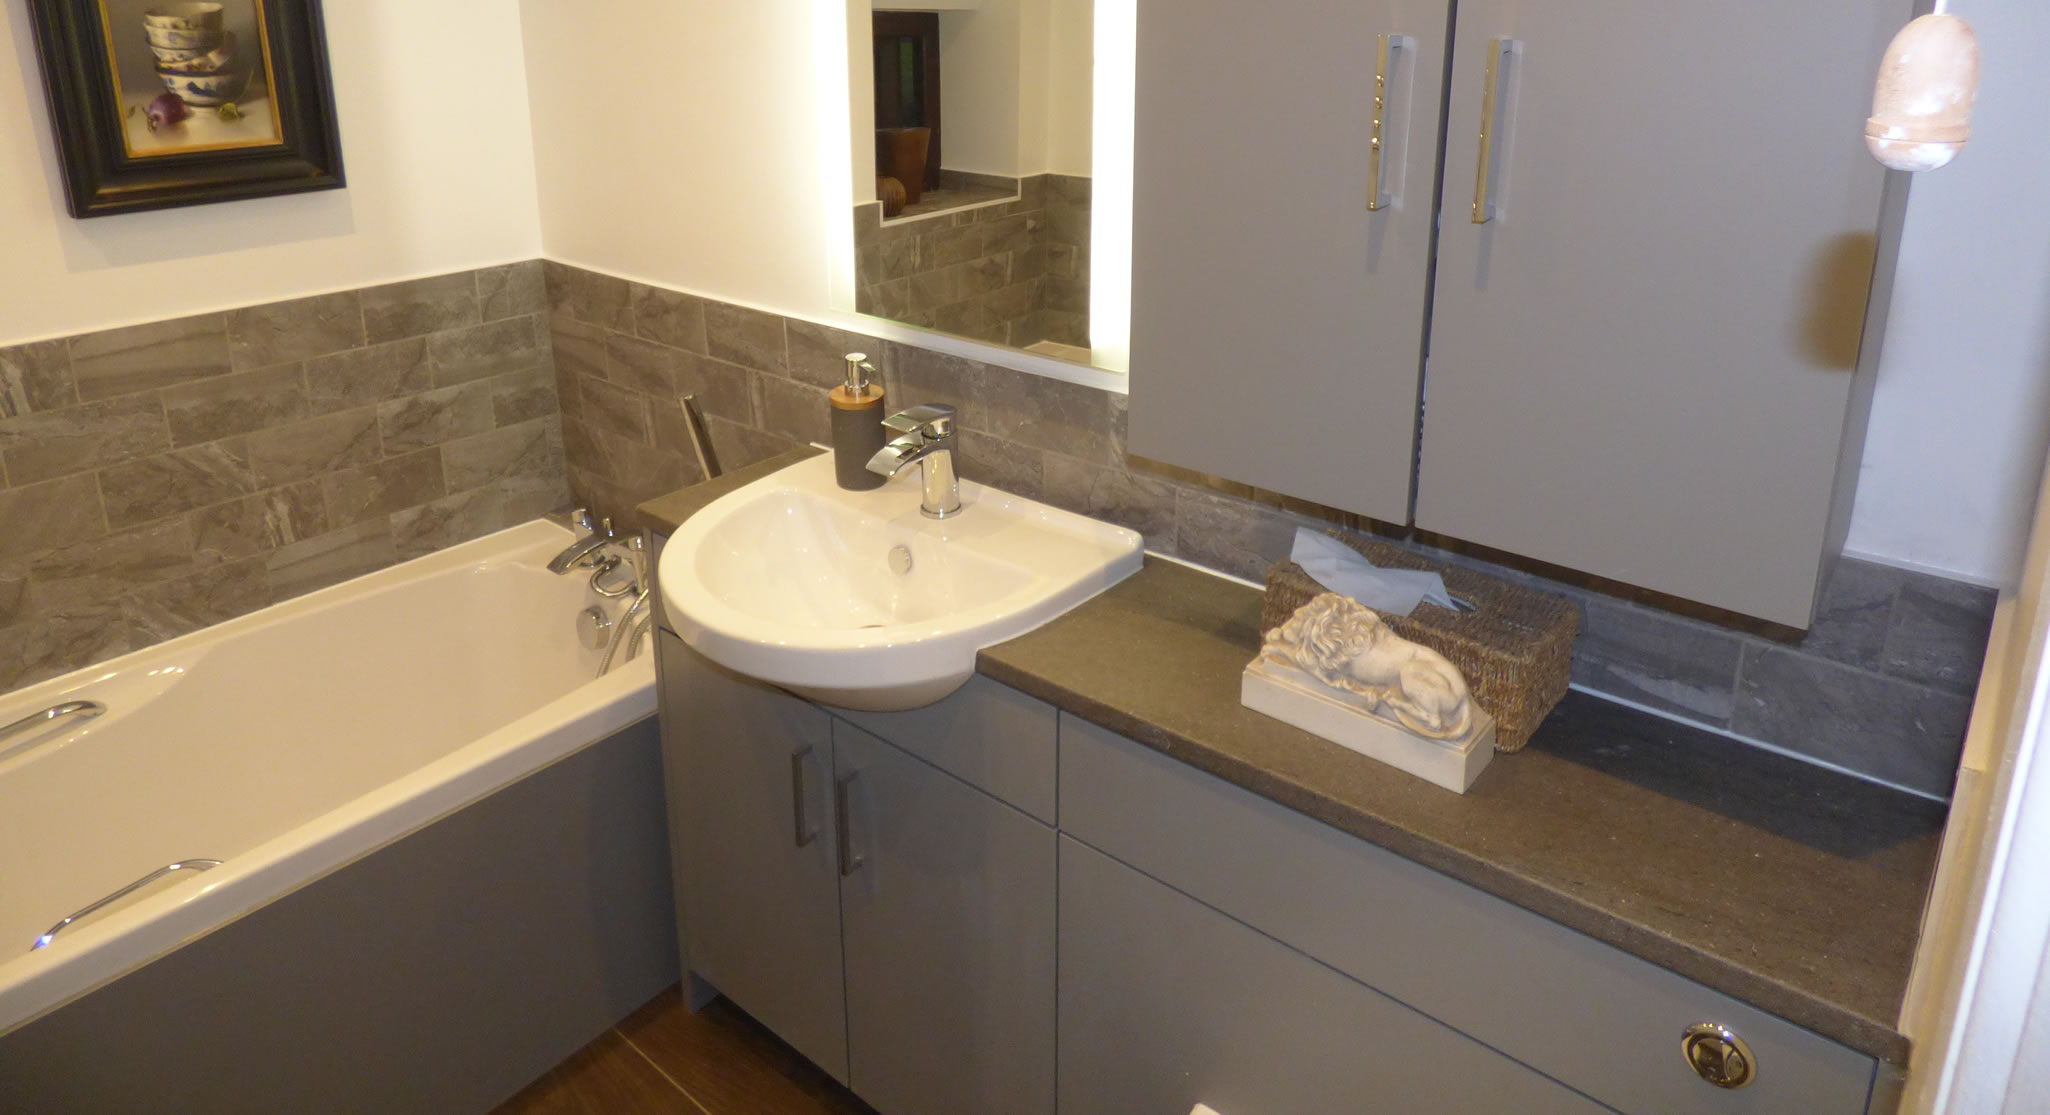 Verwood Kitchens and Bathrooms - Bathroom supply and fitting